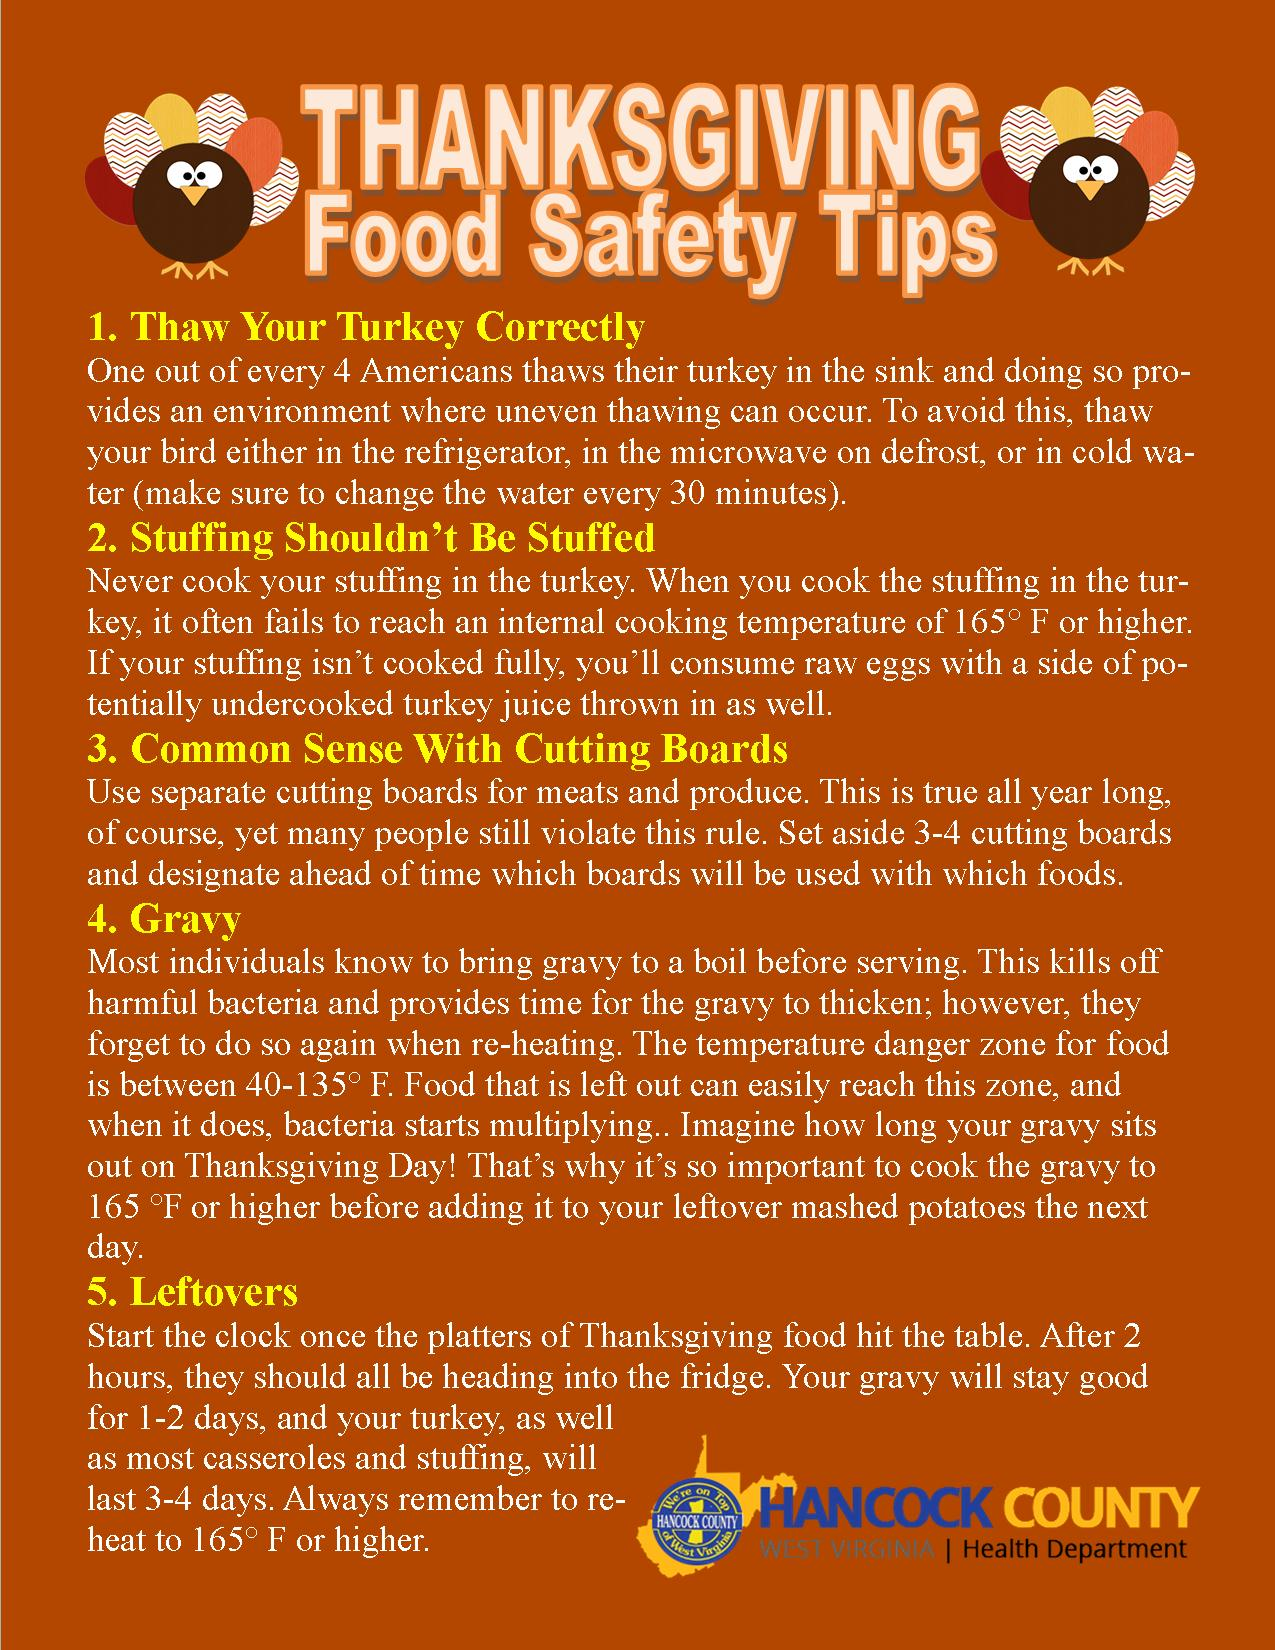 thaksgiving-food-safety